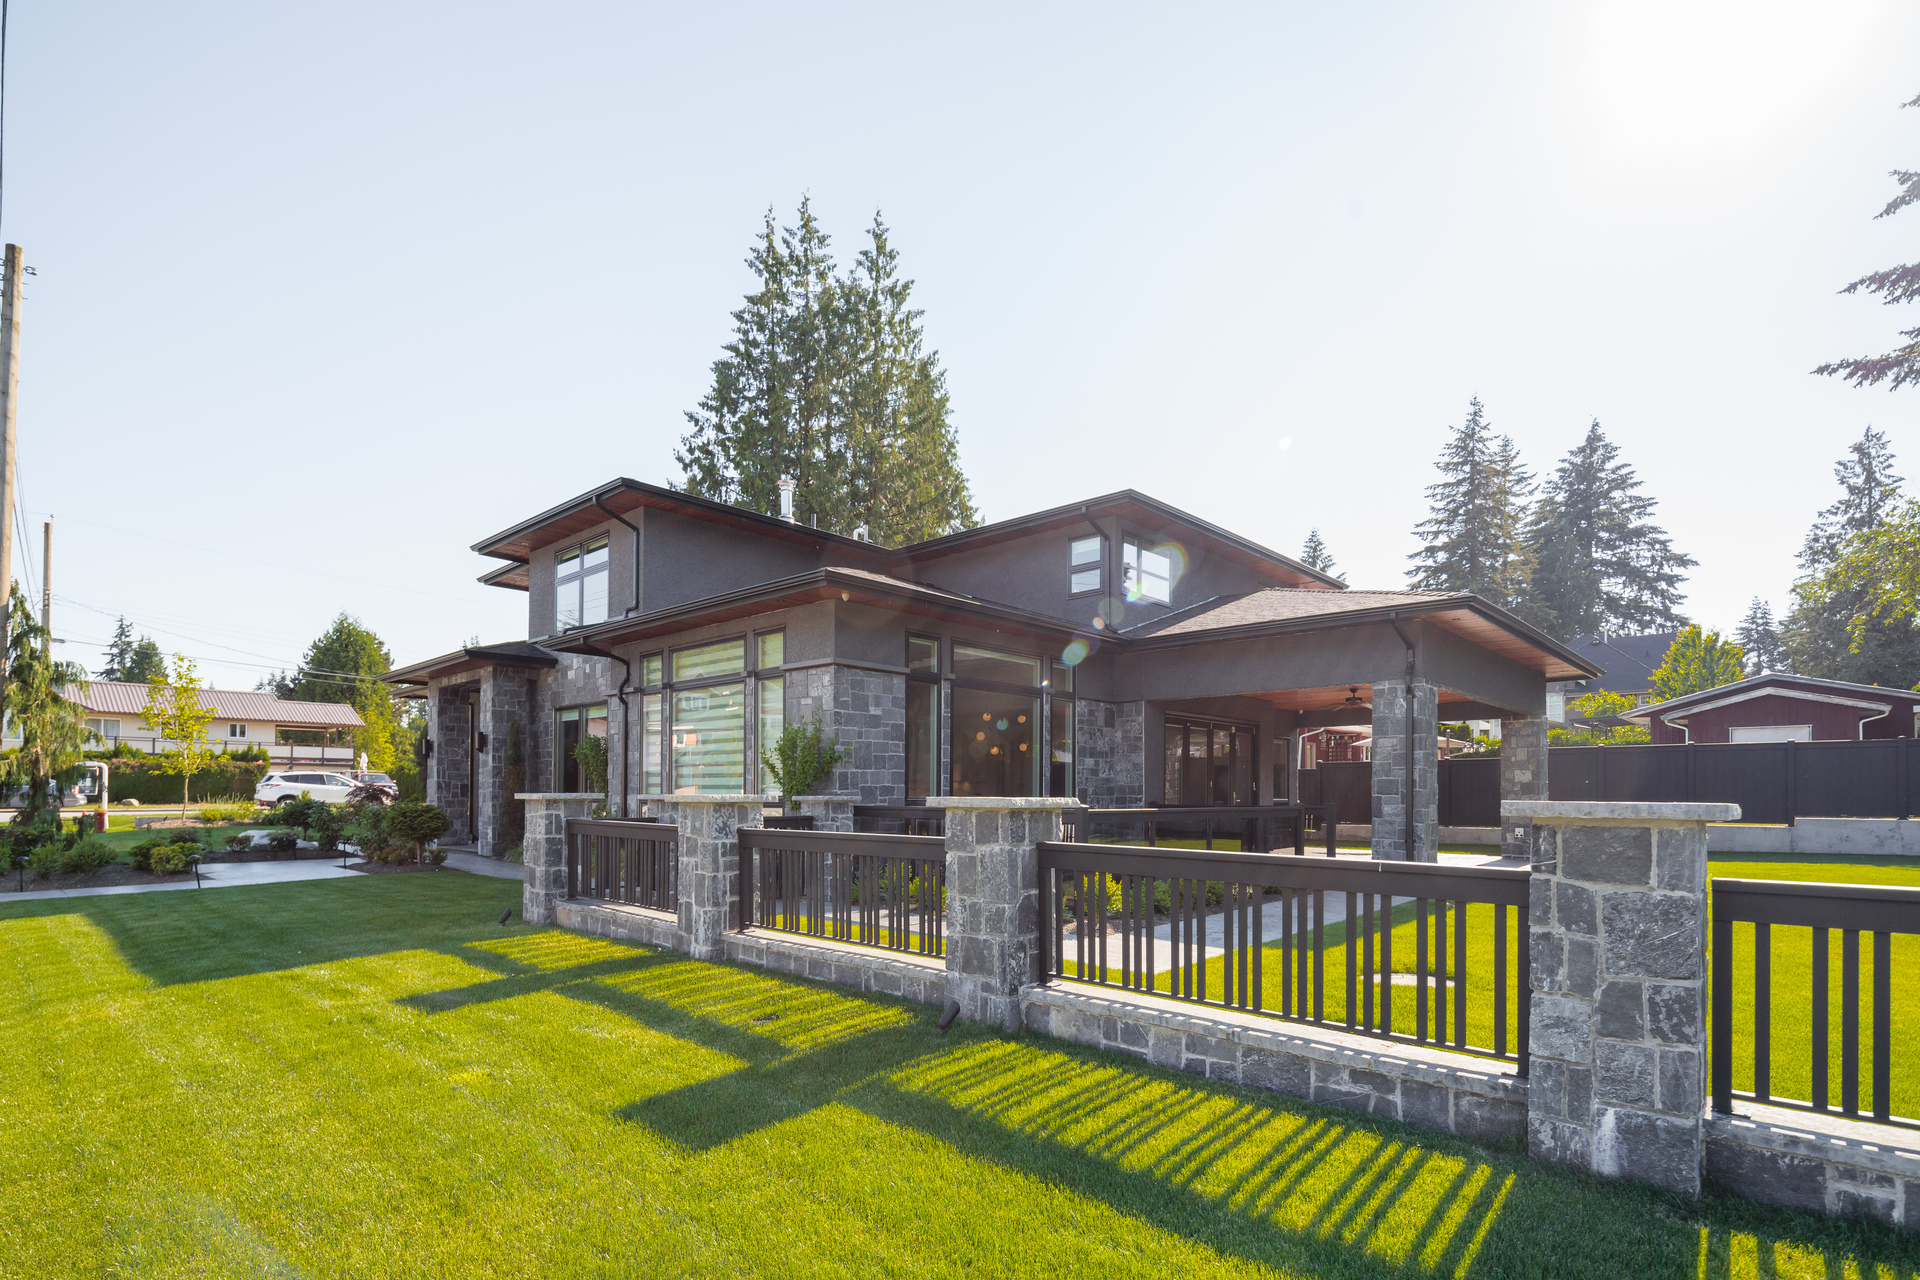 50 at 688 Easterbrook, Coquitlam West, Coquitlam